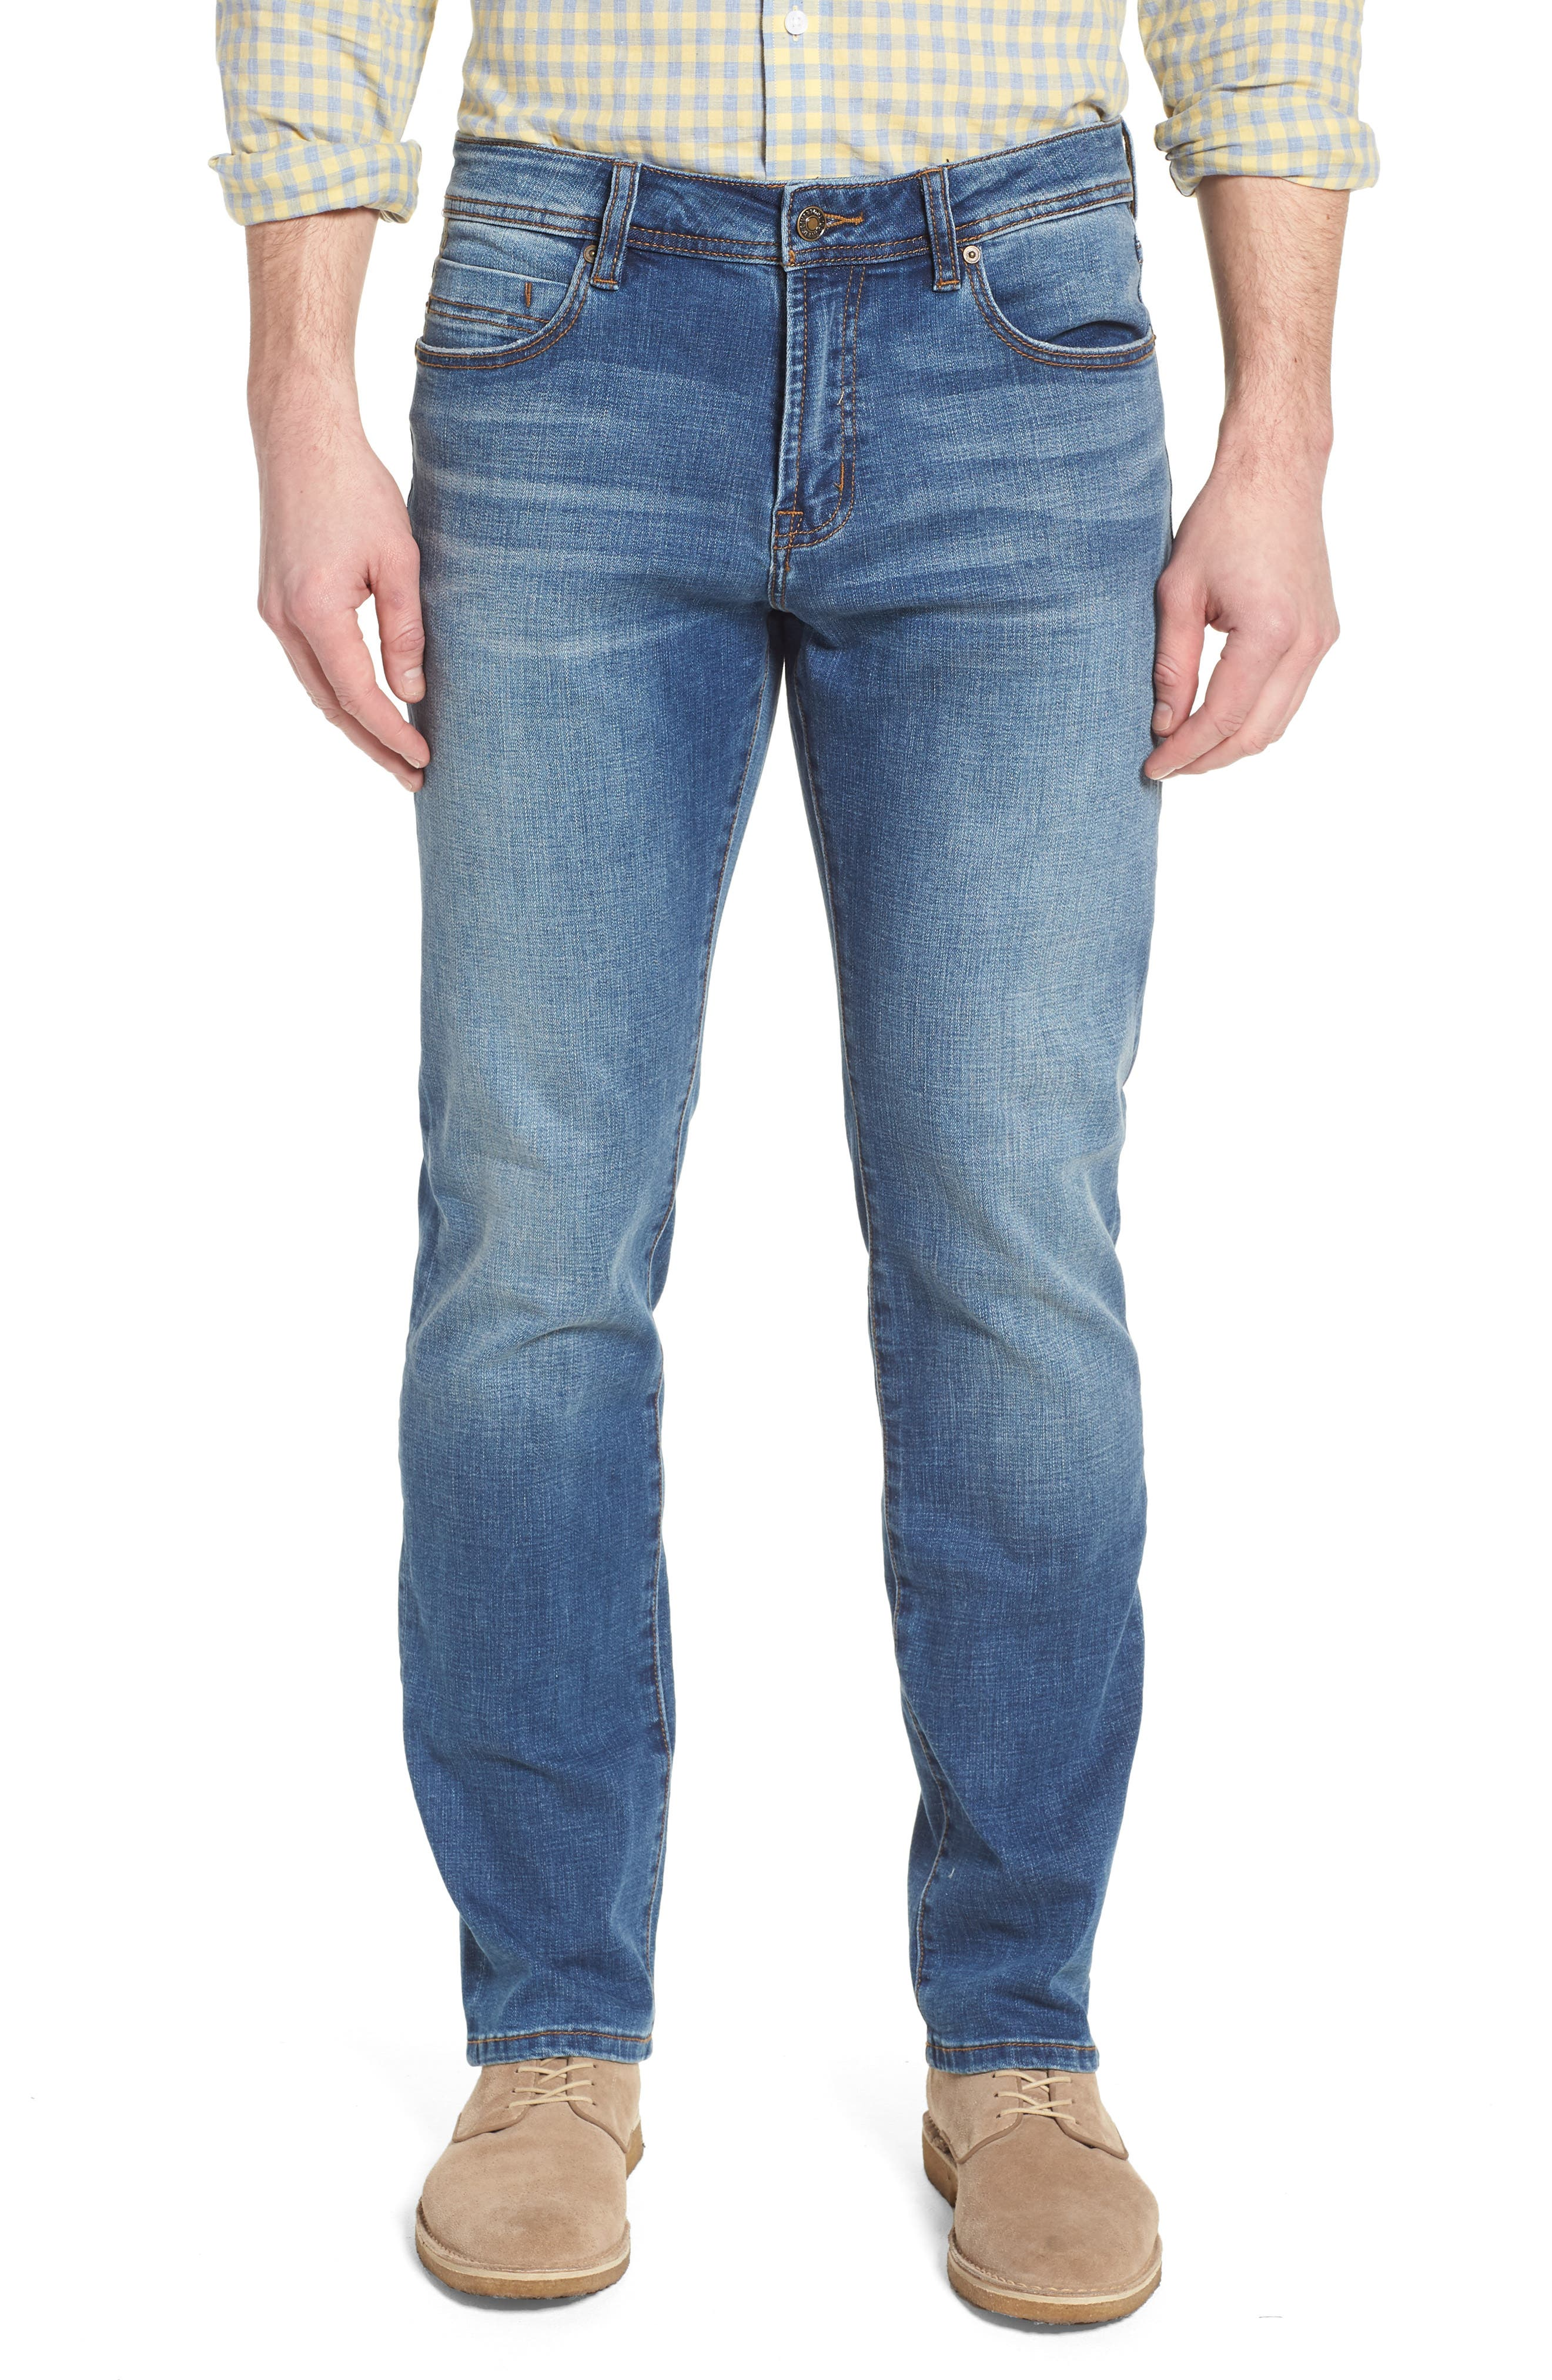 Jeans Co. Regent Relaxed Straight Leg Jeans,                         Main,                         color, Highlander Mid